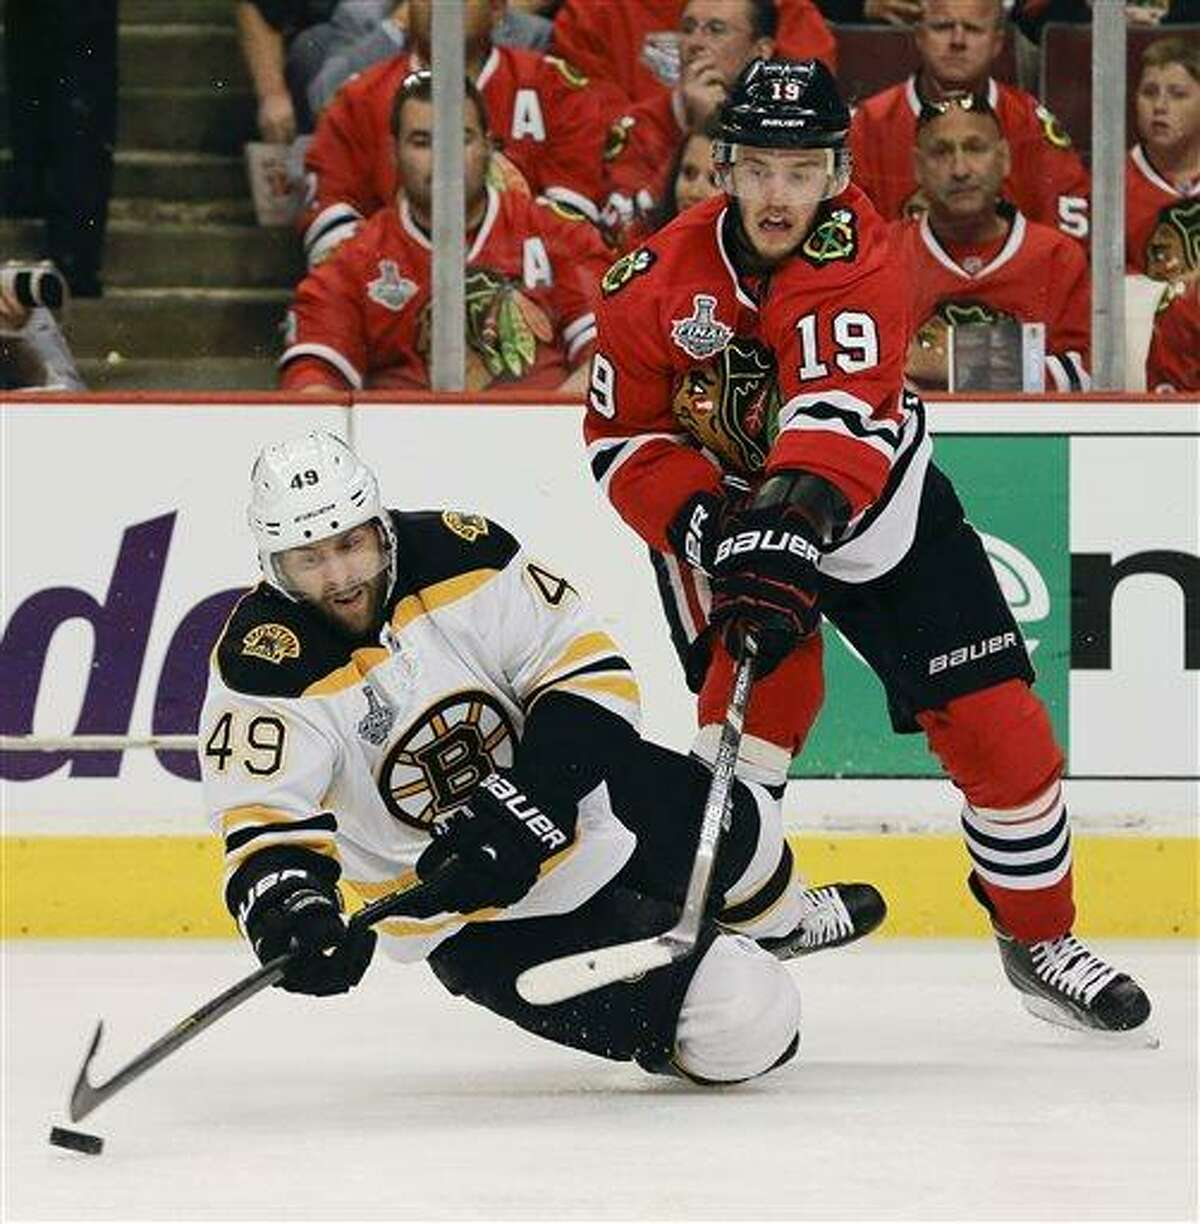 Boston Bruins center Rich Peverley (49) falls to the ice as he keeps the puck from Chicago Blackhawks center Jonathan Toews (19) in the second period during Game 2 of the NHL hockey Stanley Cup Finals, Saturday, June 15, 2013, in Chicago. (AP Photo/Nam Y. Huh)